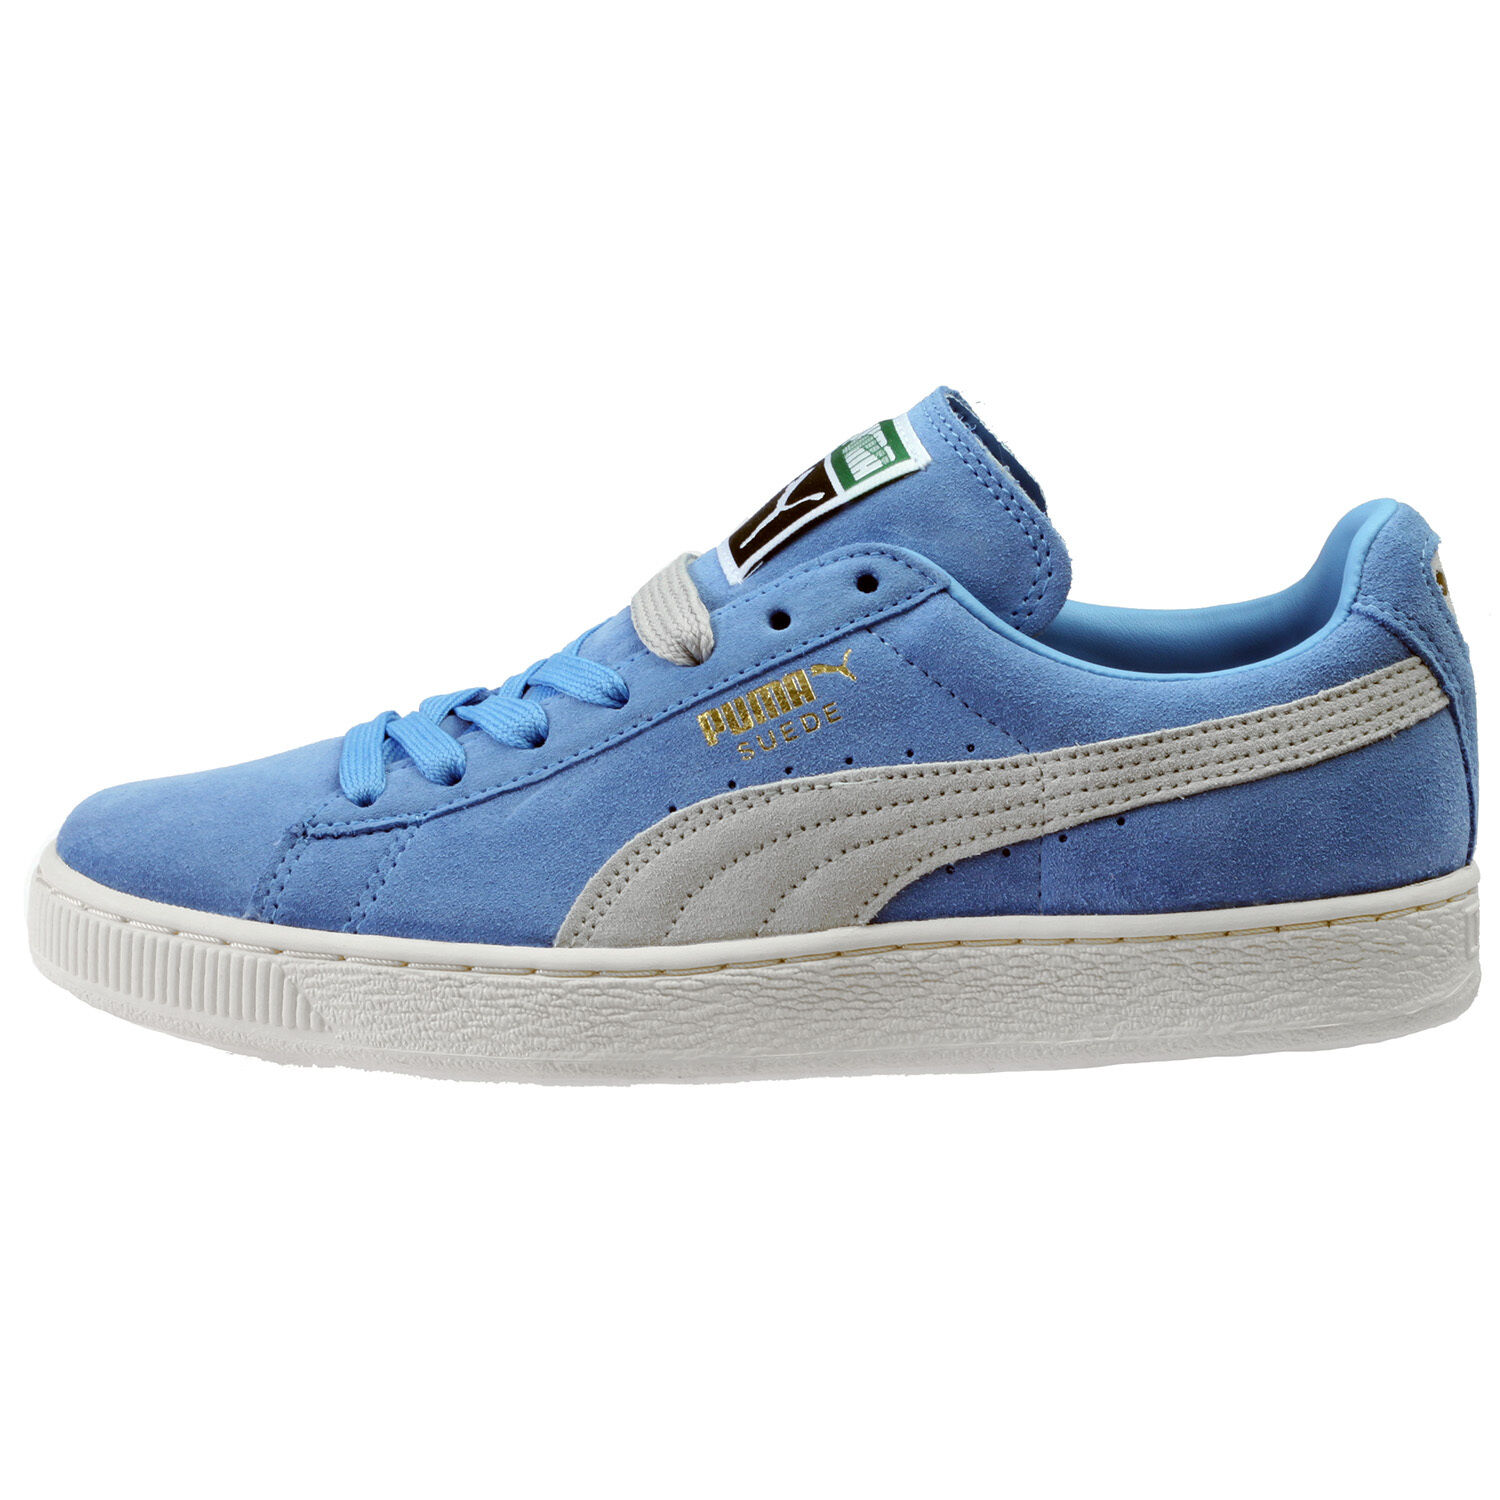 Puma Suede Classic + Mens 356568-39 Little Boy bluee Grey Athletic shoes Size 7.5